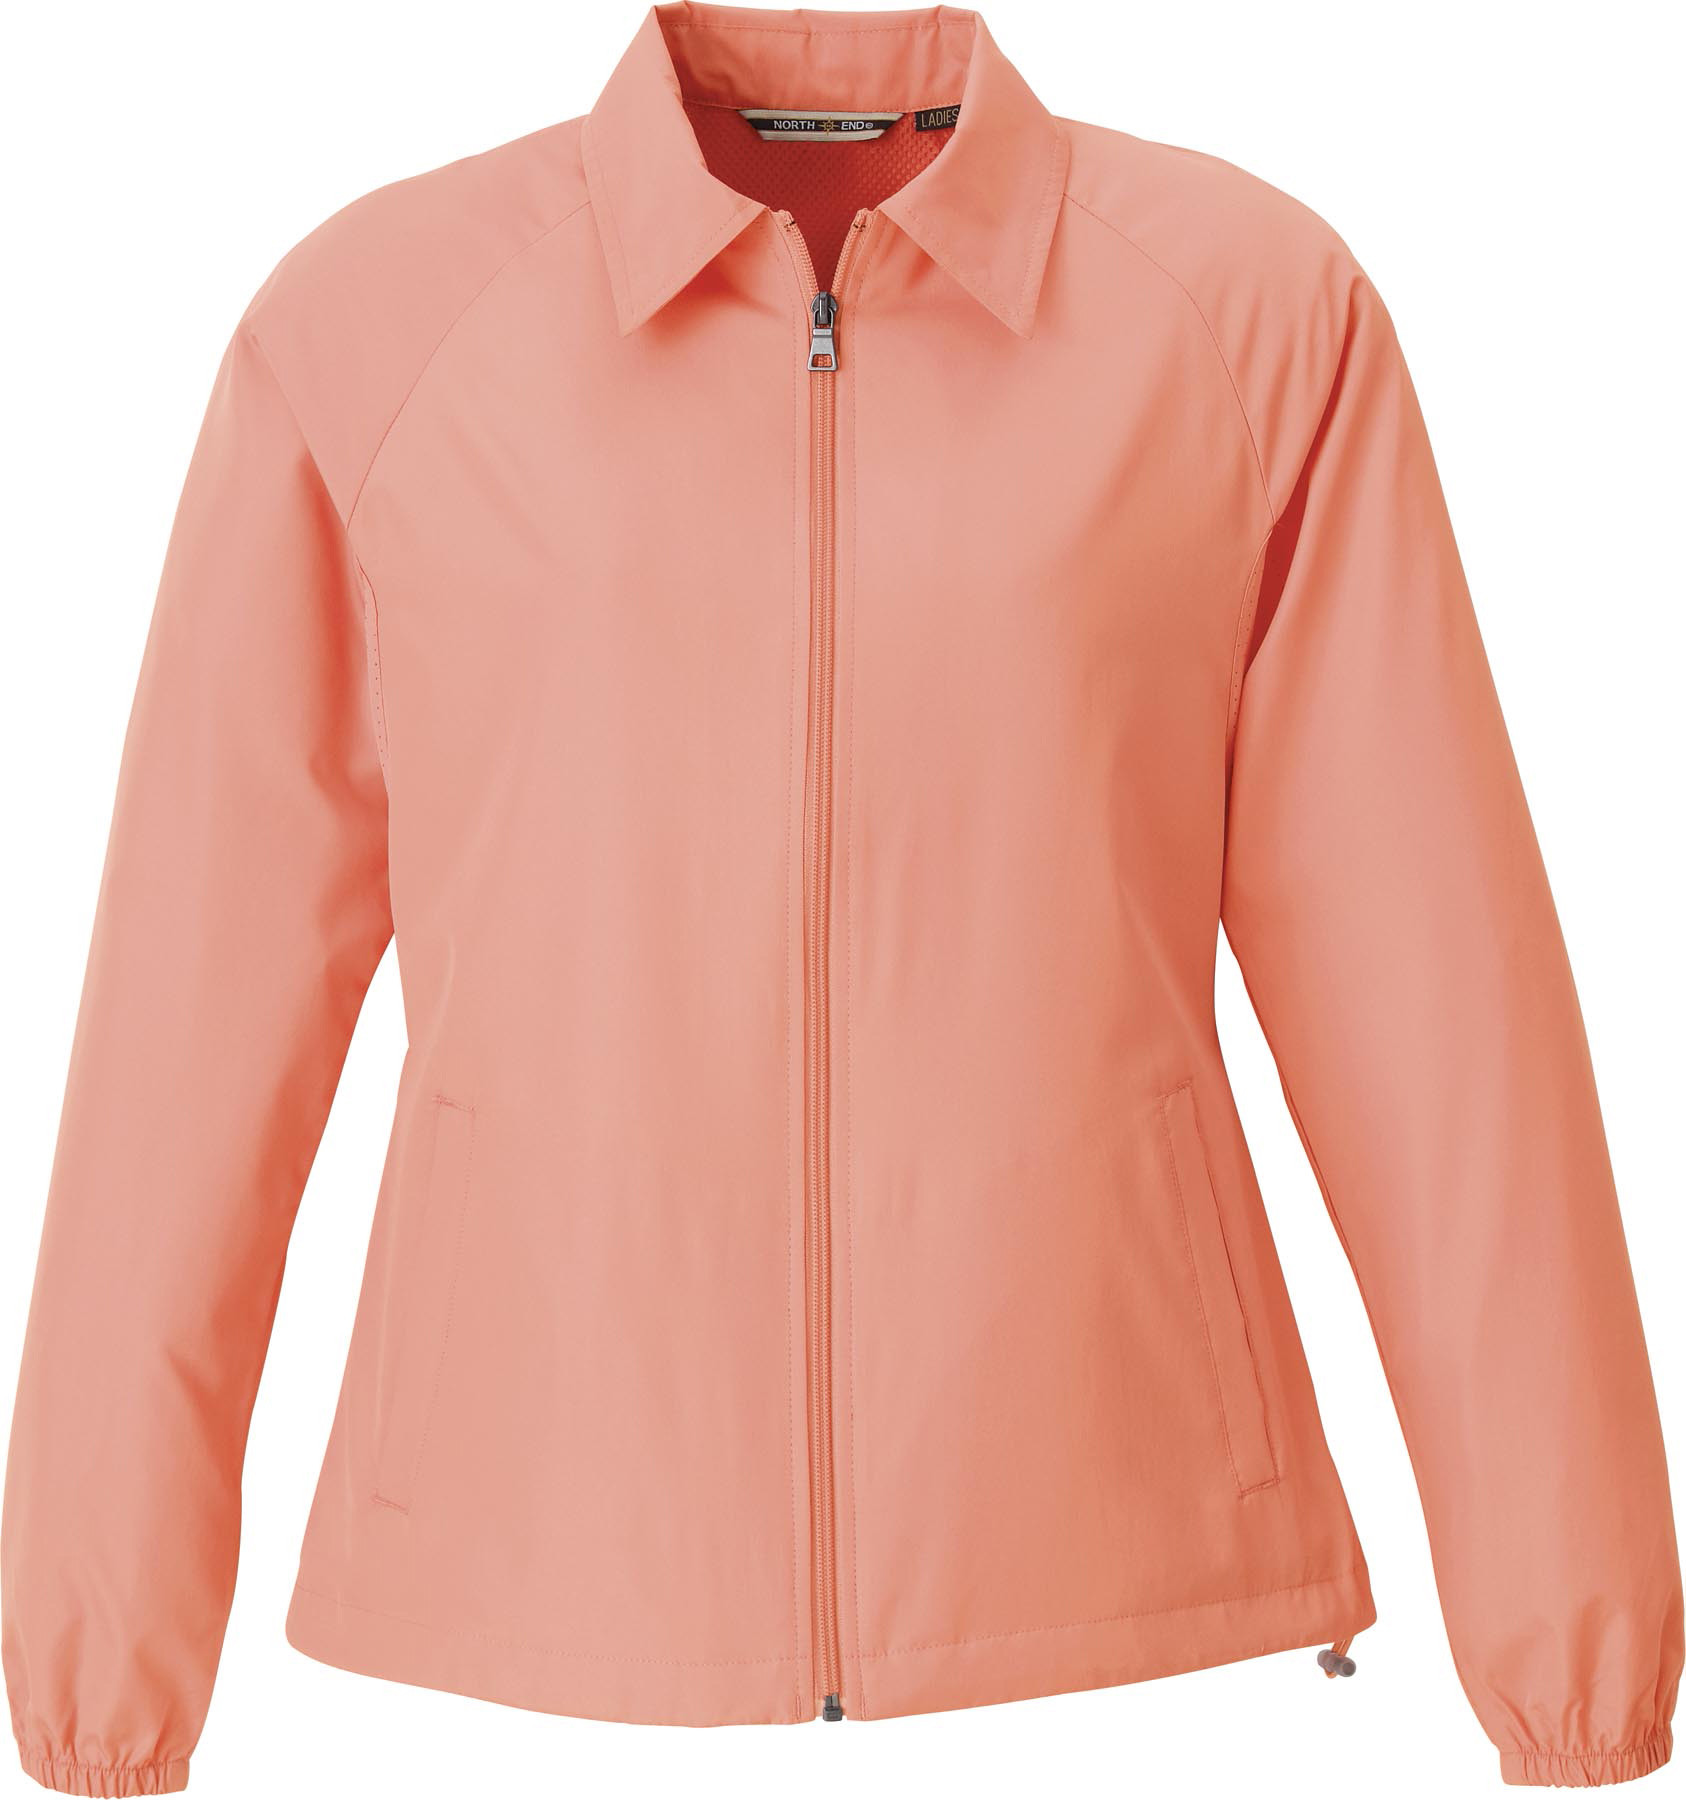 Ash City Lightweight 78055 - Ladies' Full-Zip Lightweight Vented Jacket